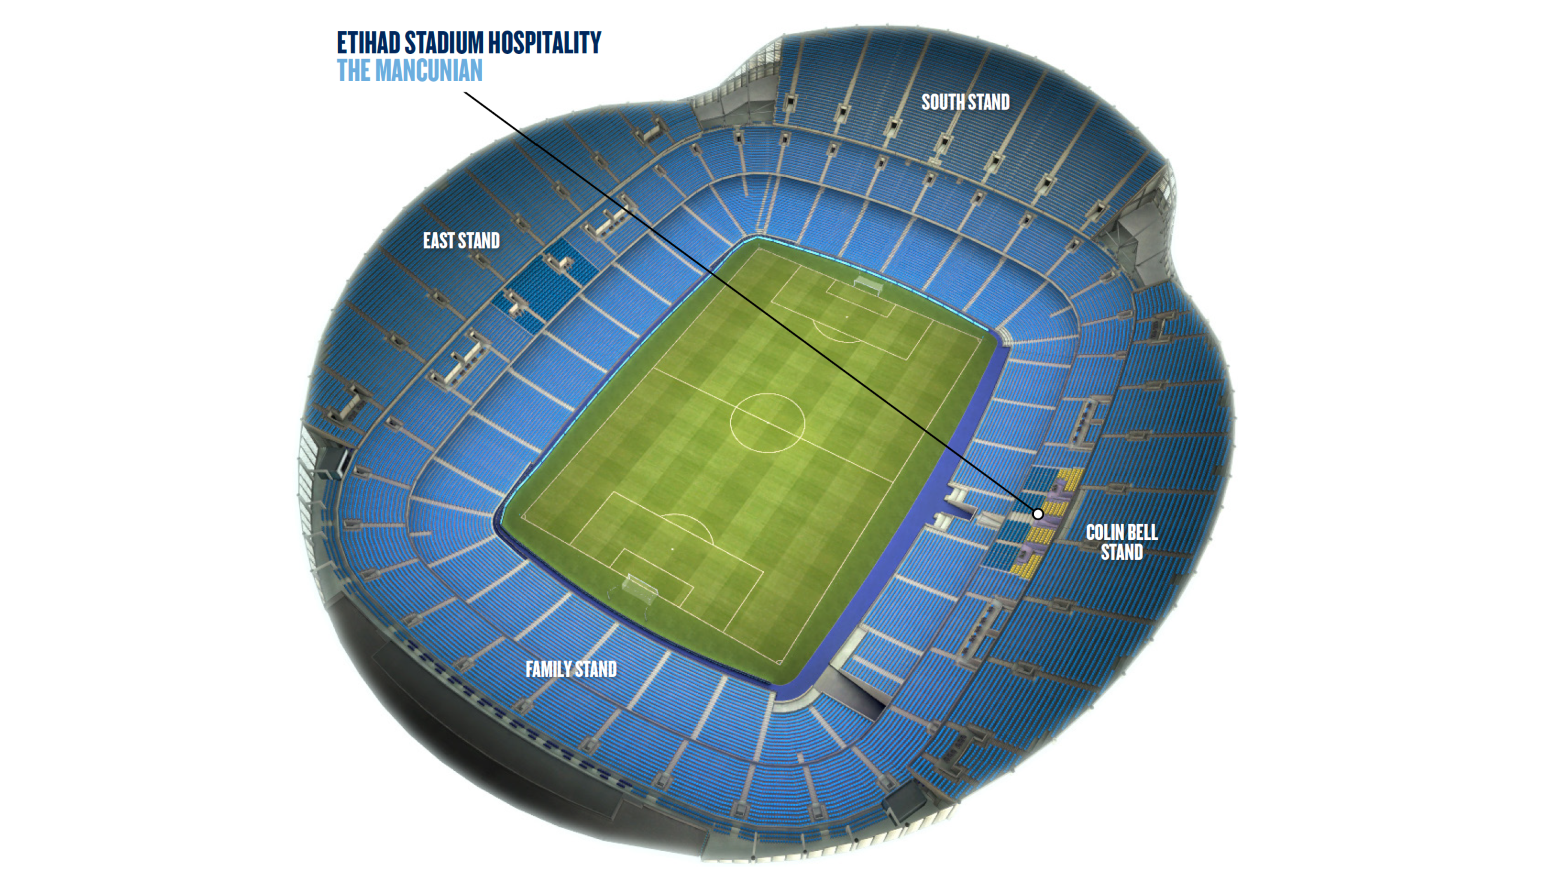 Mancunian stadium plan